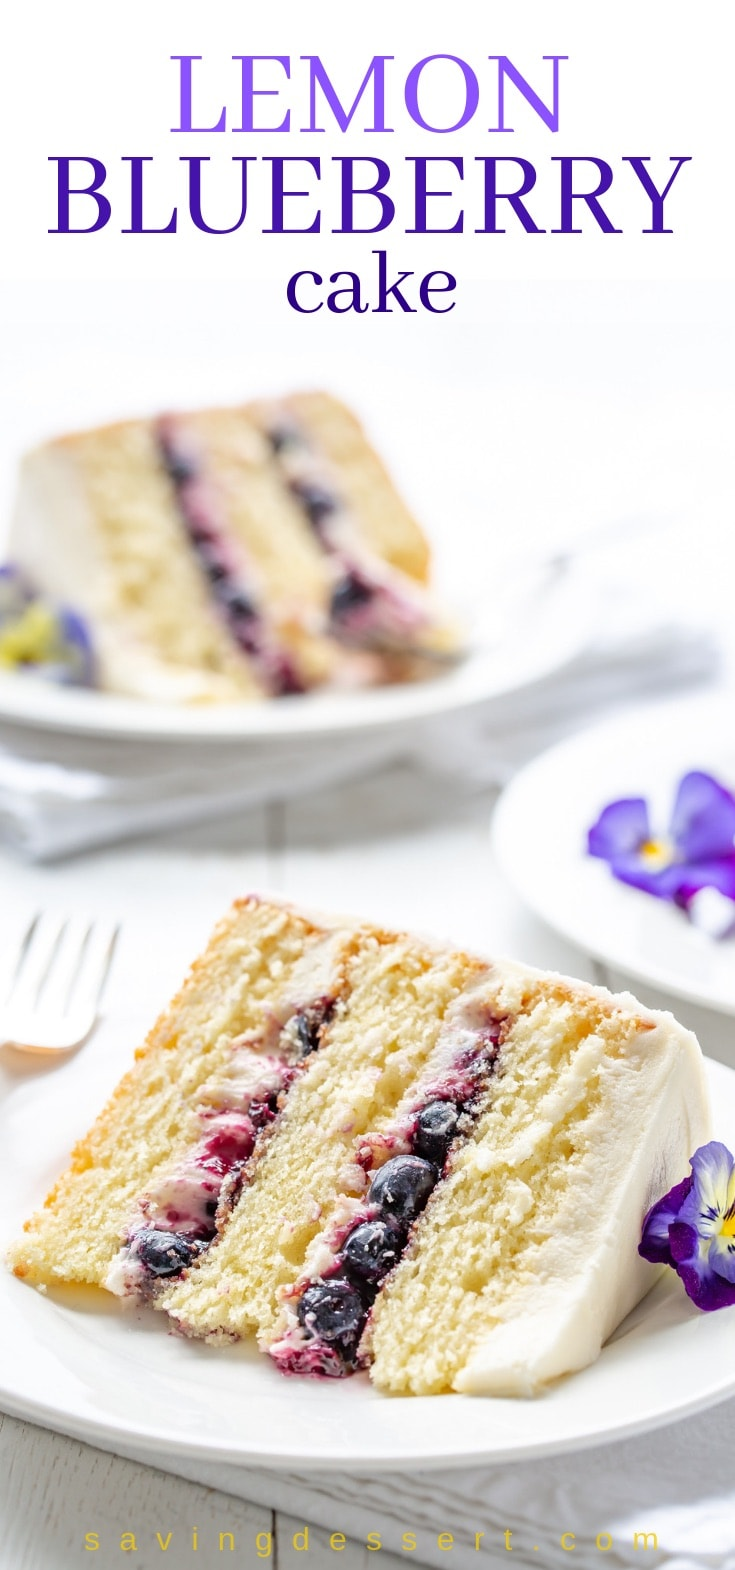 A big slice of Lemon Blueberry Cake decorated with purple pansies